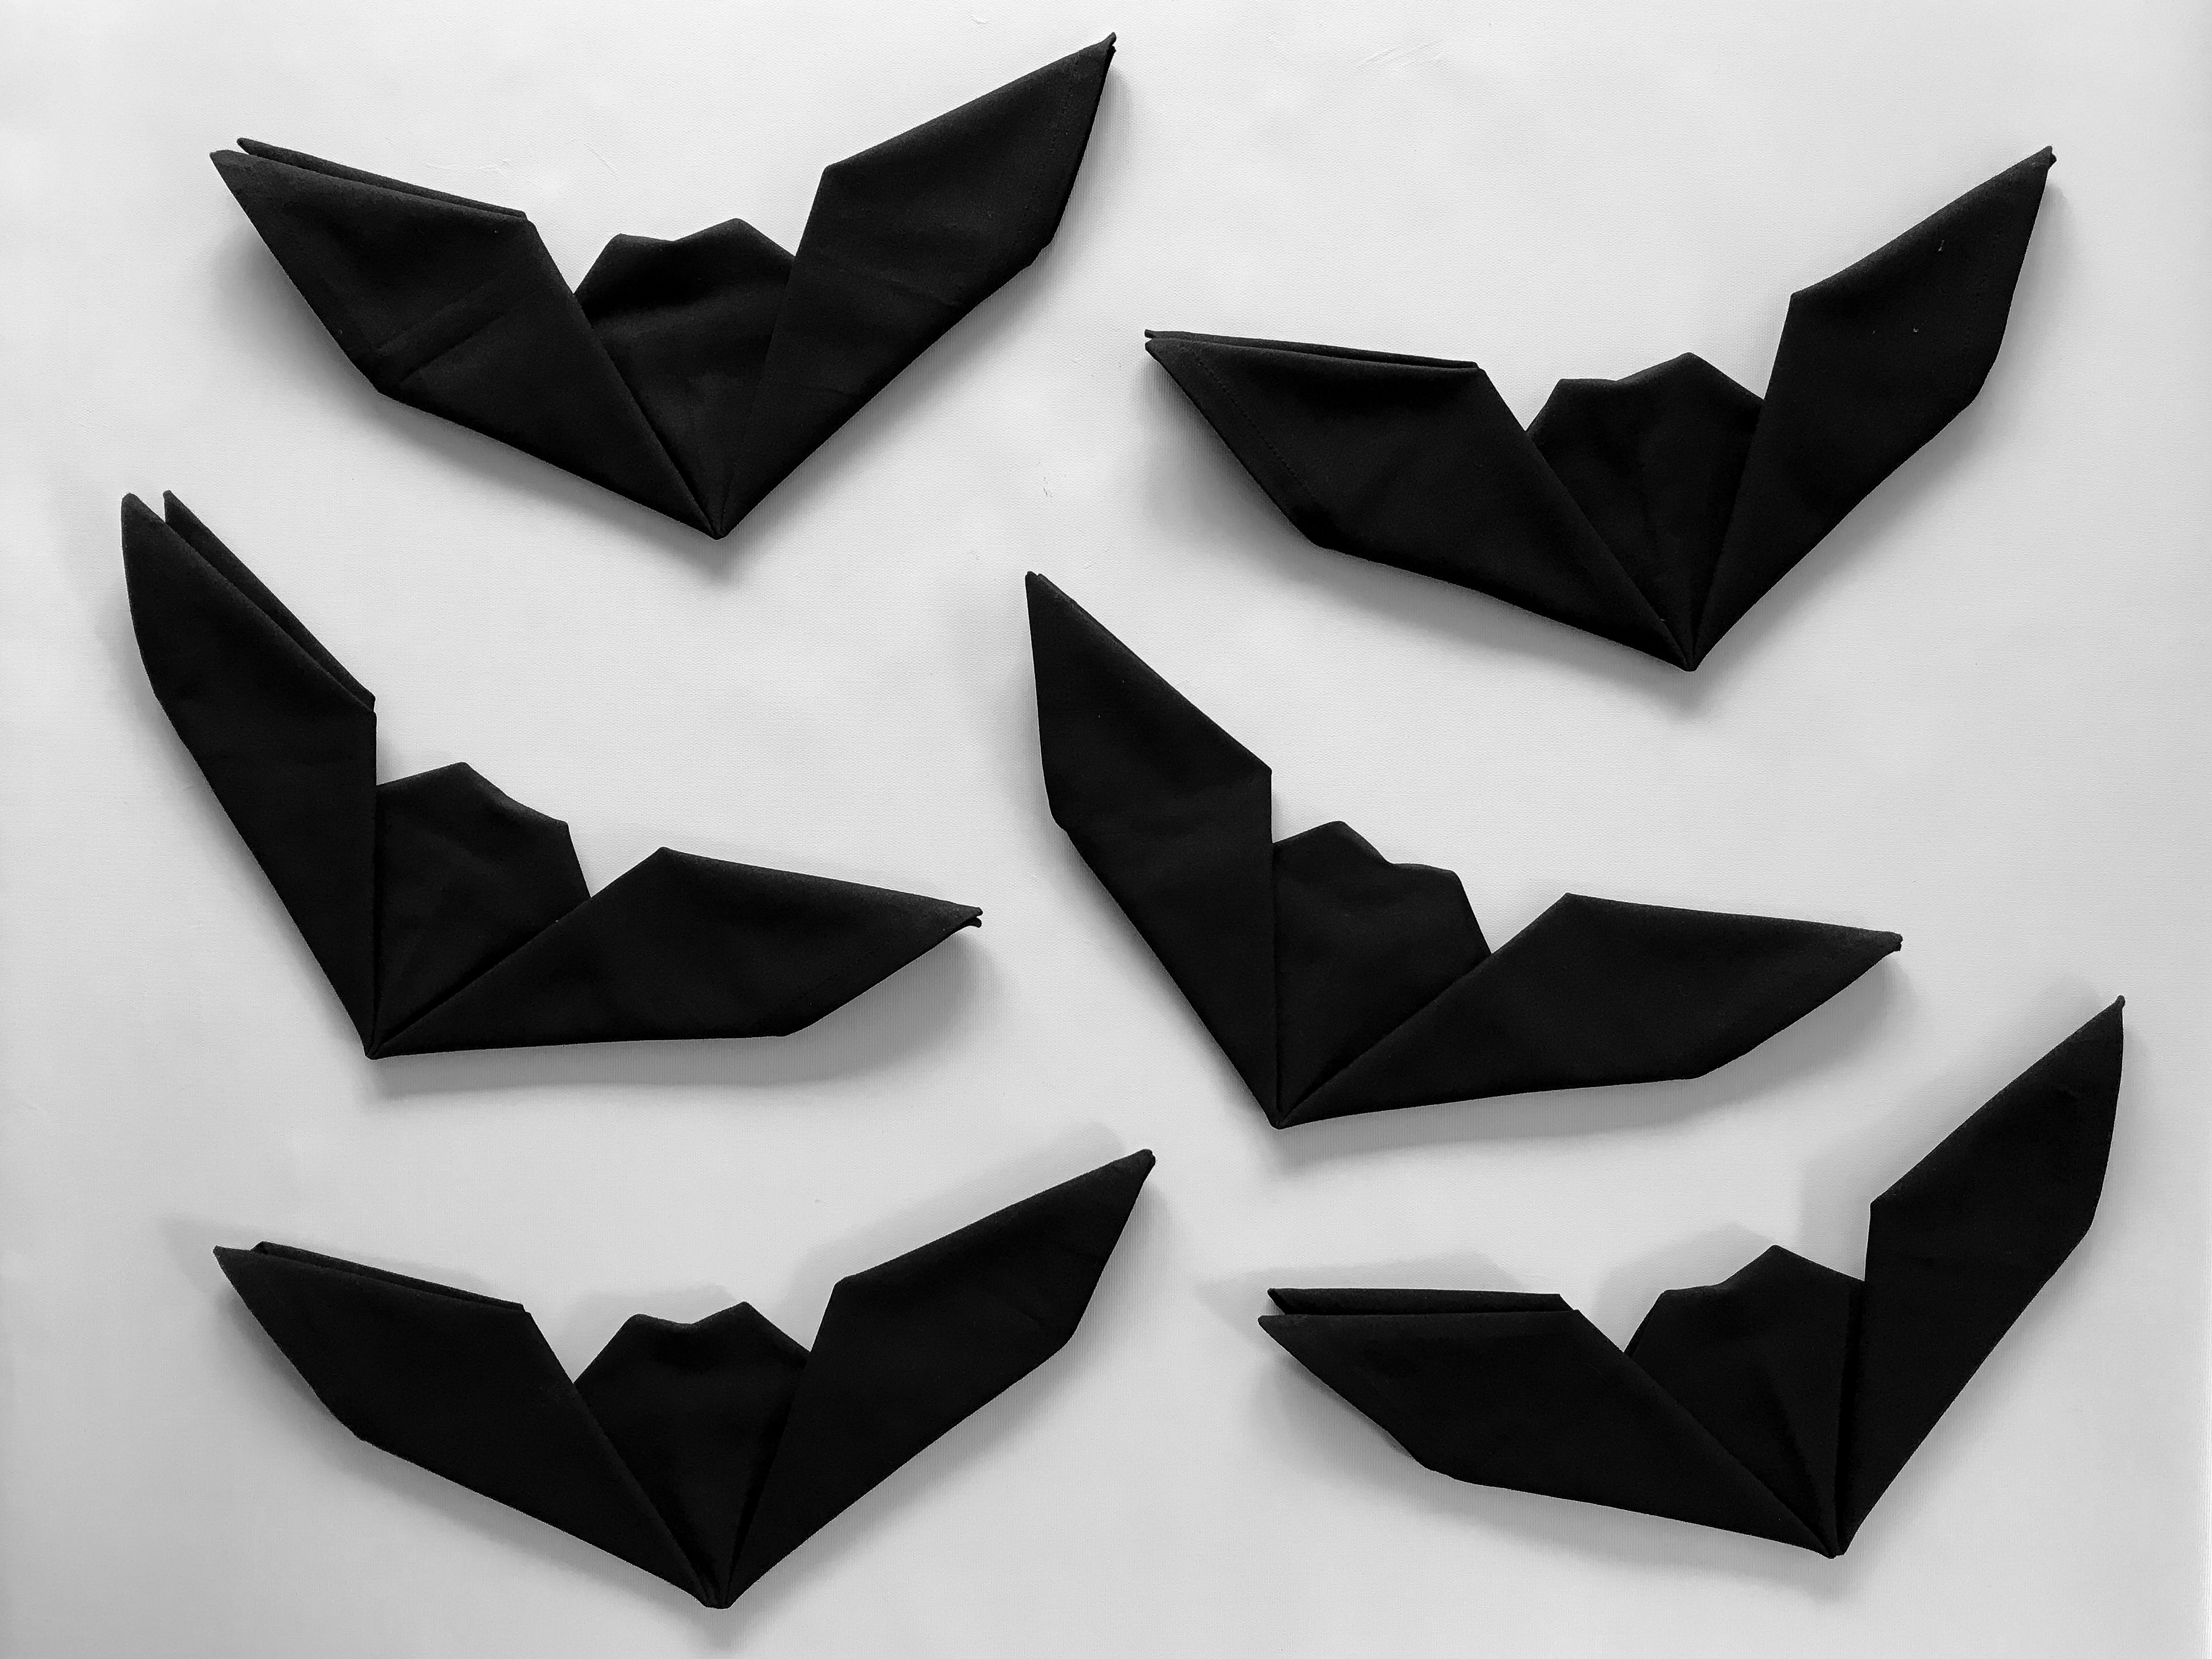 Bat Napkin Folding With Pictures Instructables